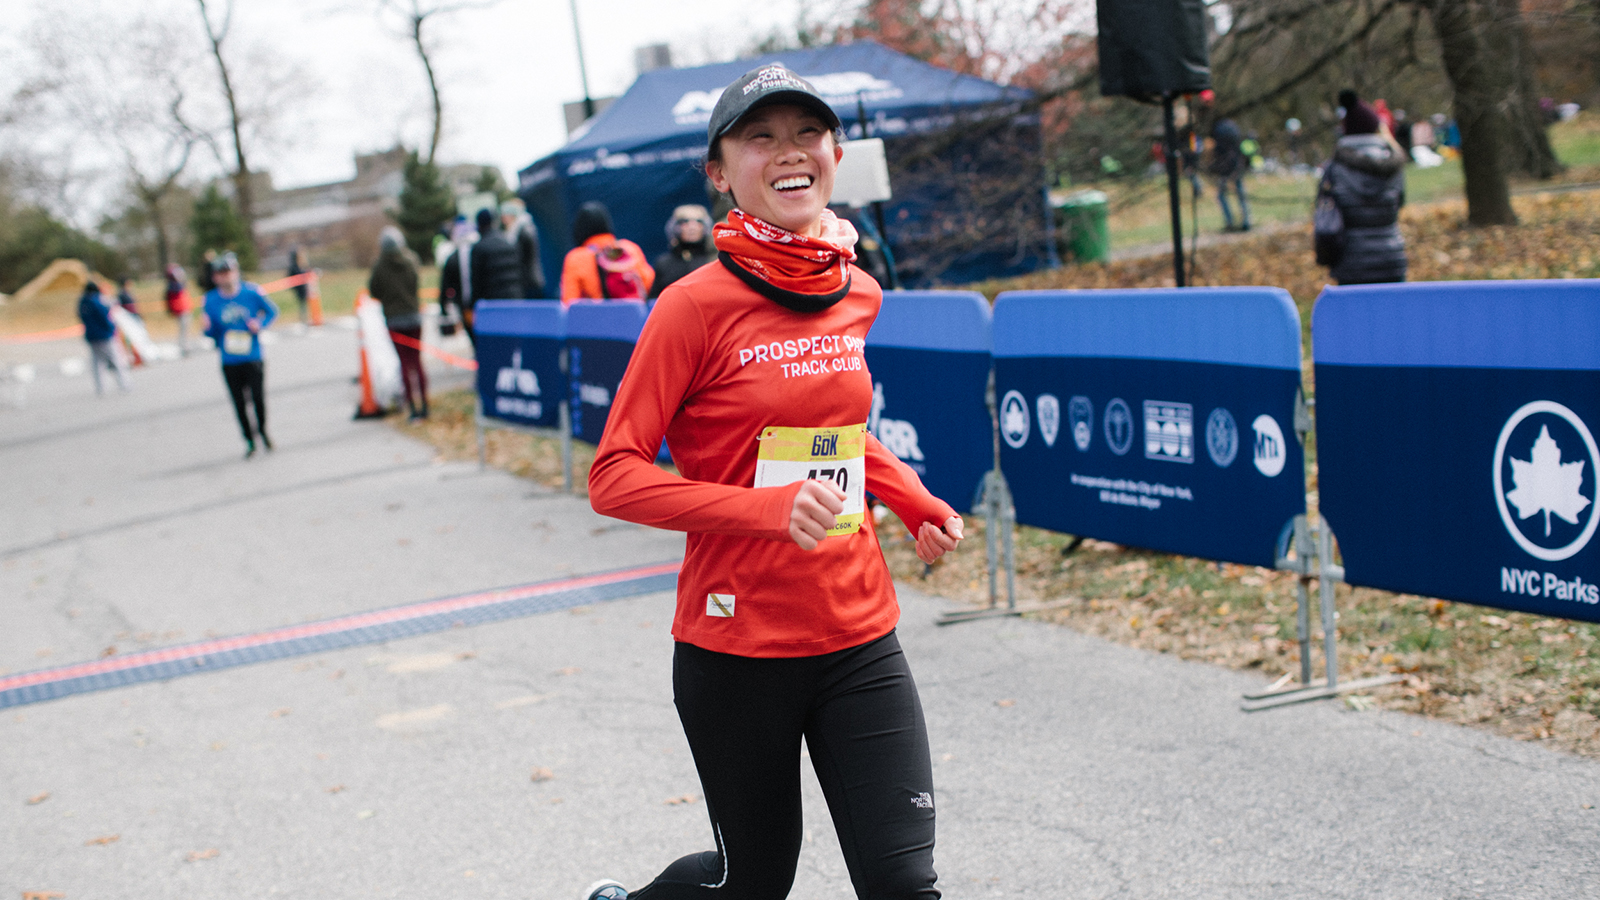 A woman running past and smiling at the camera